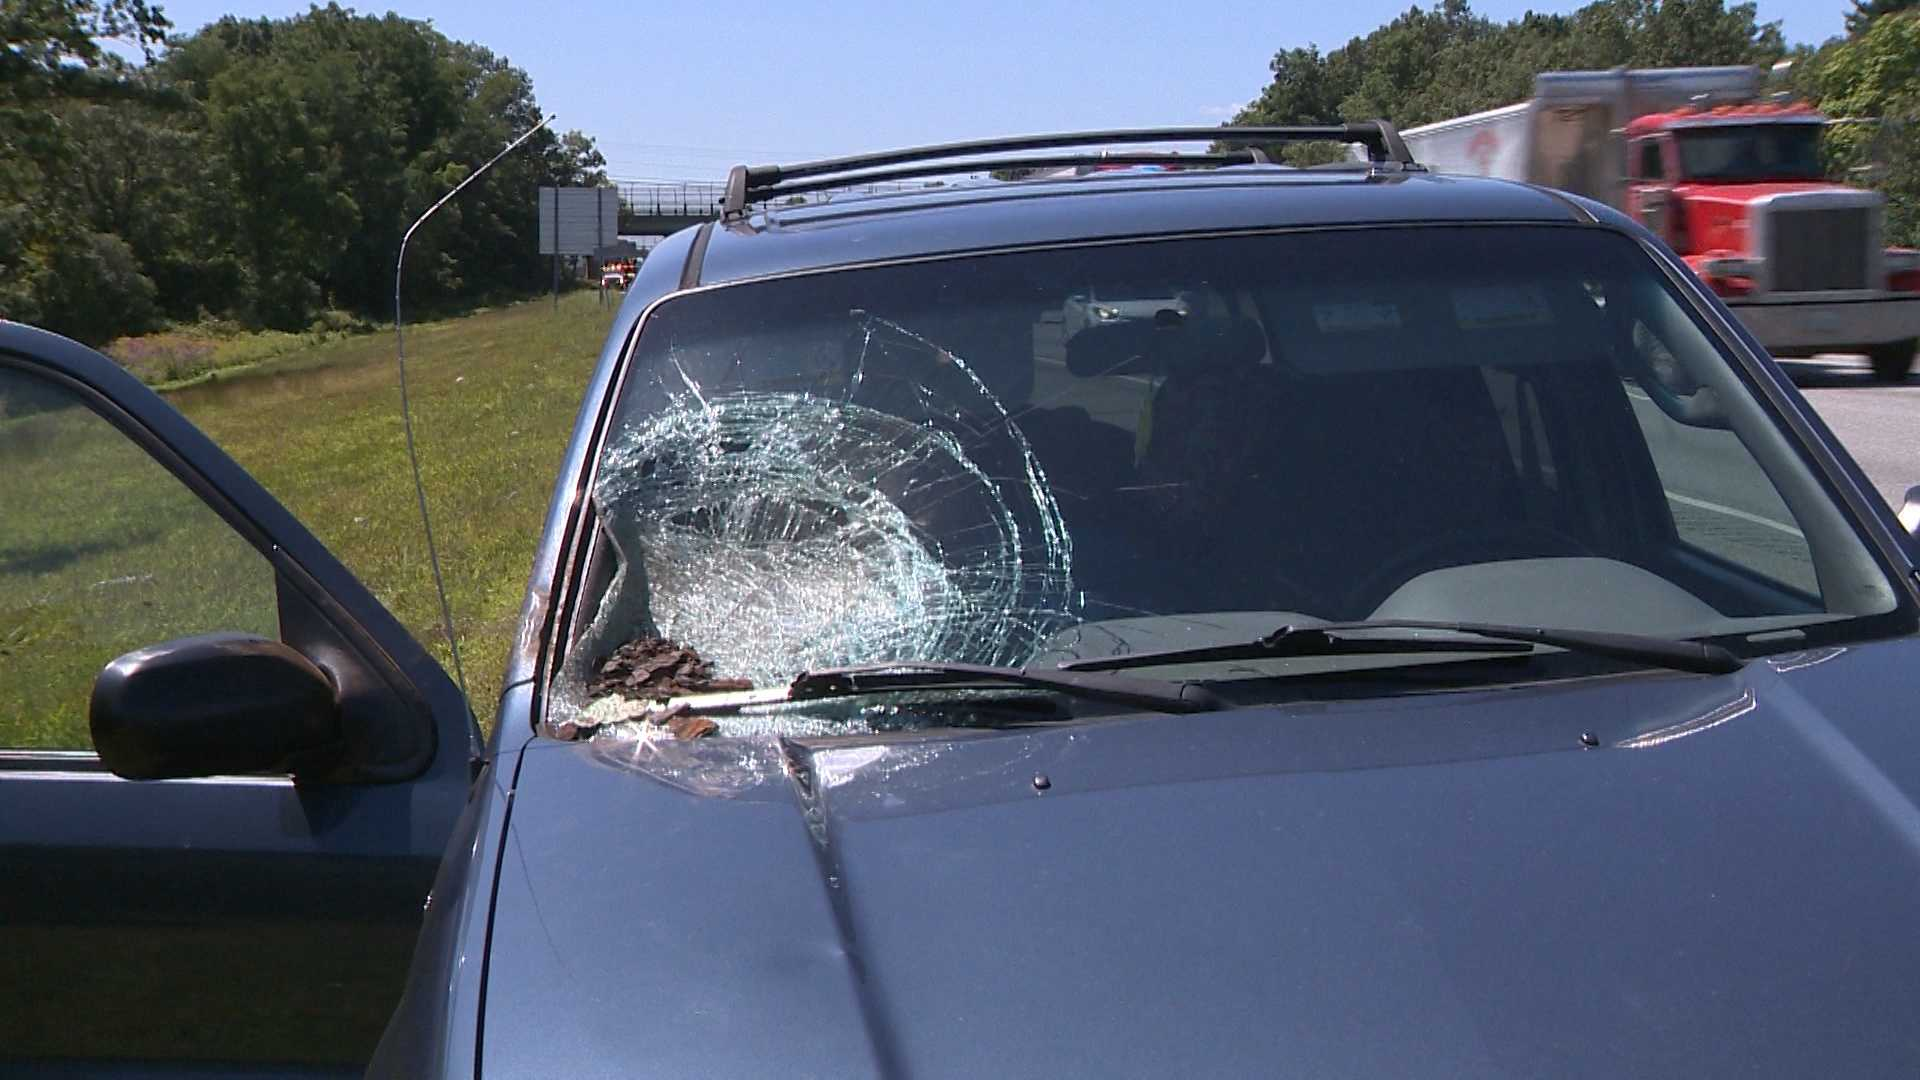 Route 495 car smashed by debris 8.19